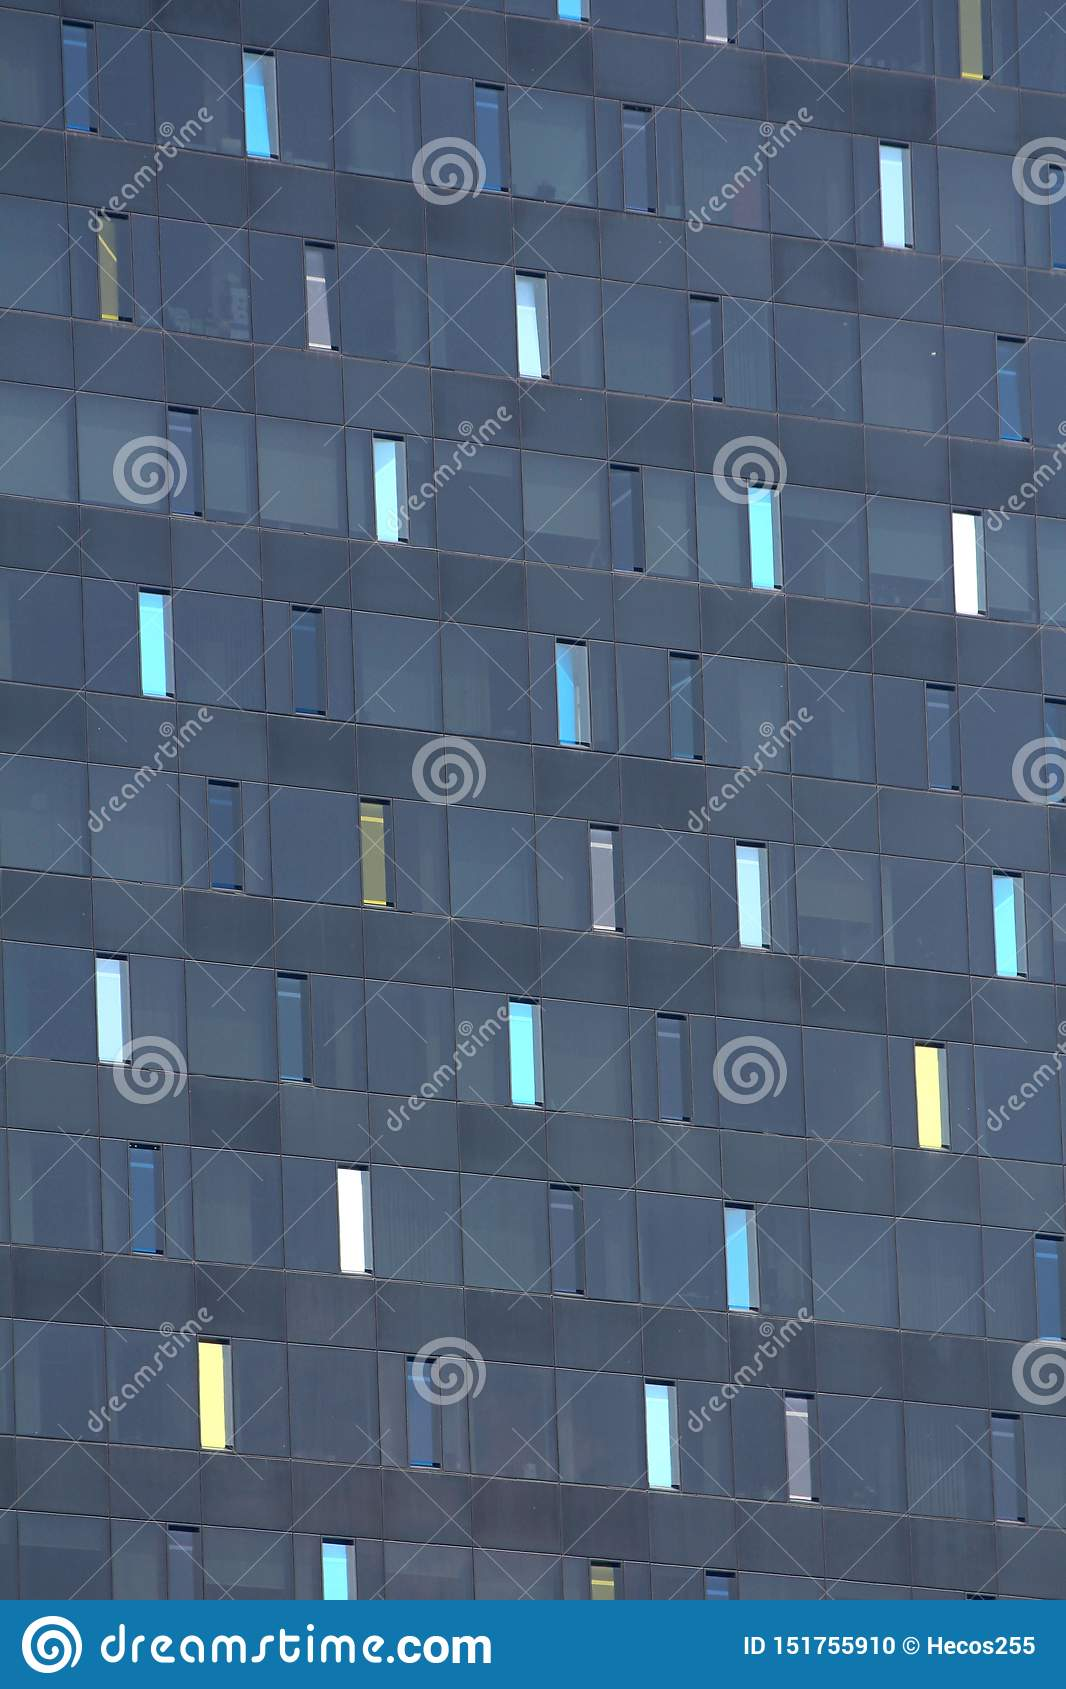 Tall narrow colorful windows on new dark modern office building texture background